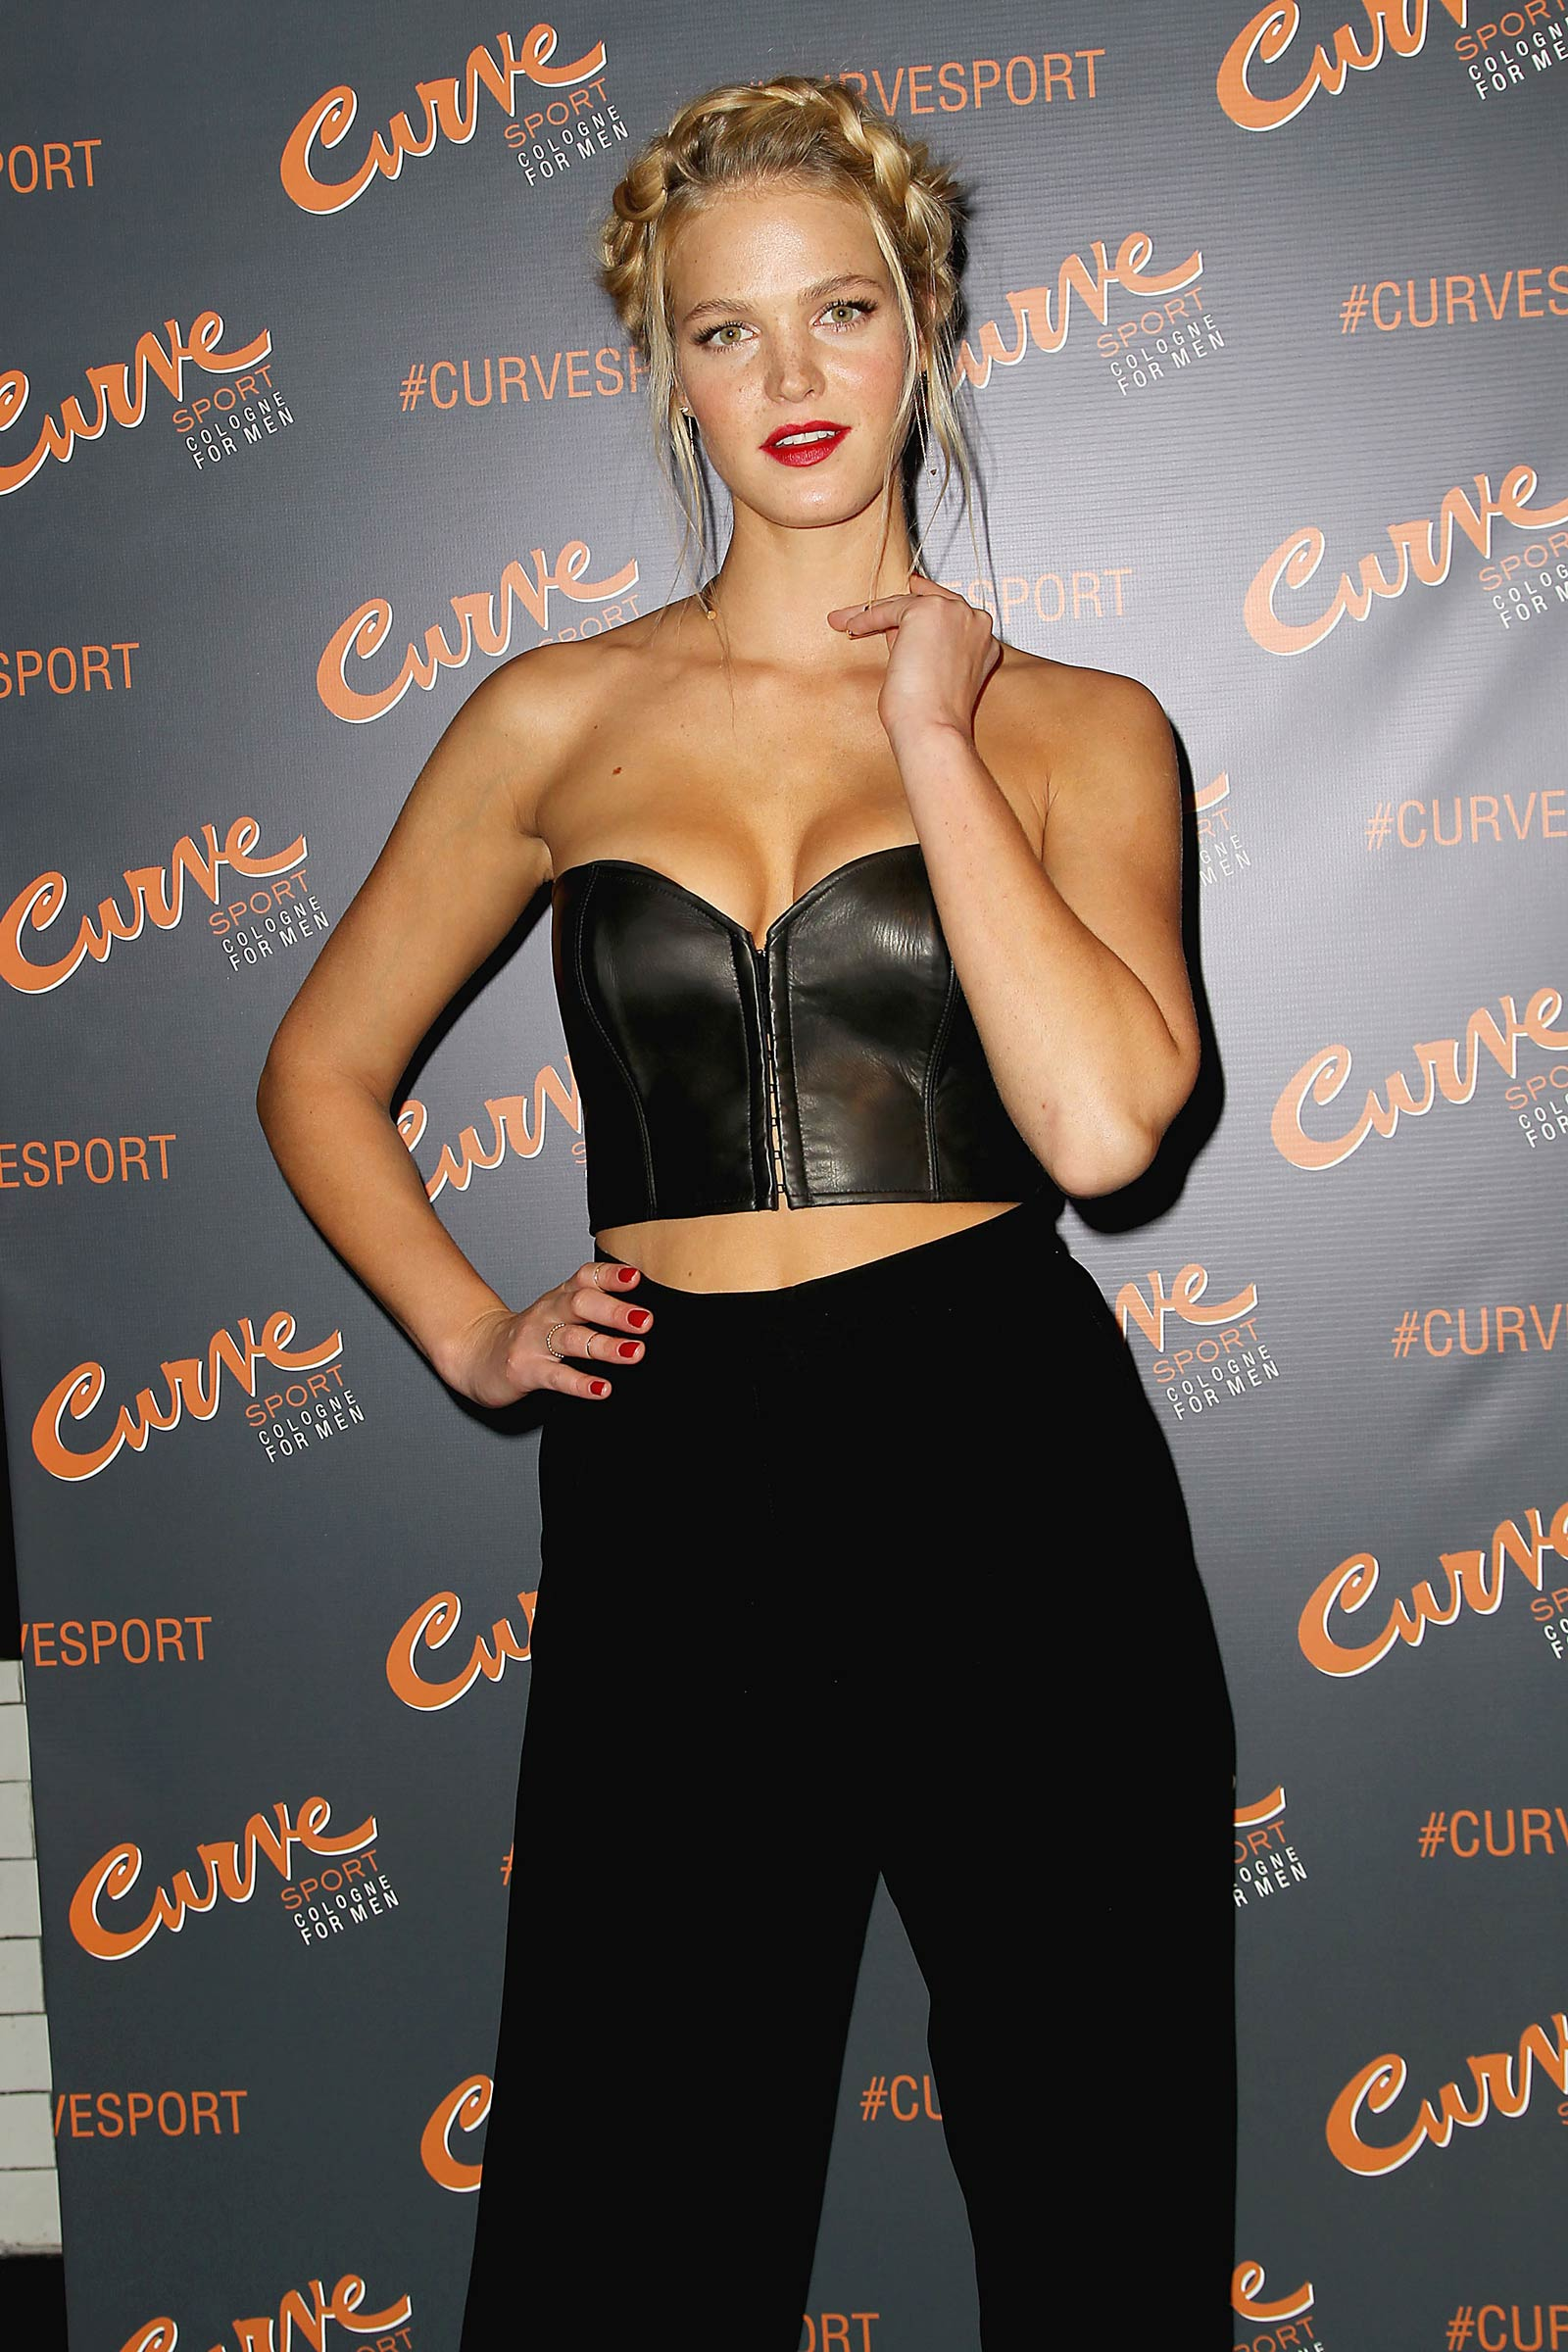 Erin Heatherton attends Curve Sport Launch Party